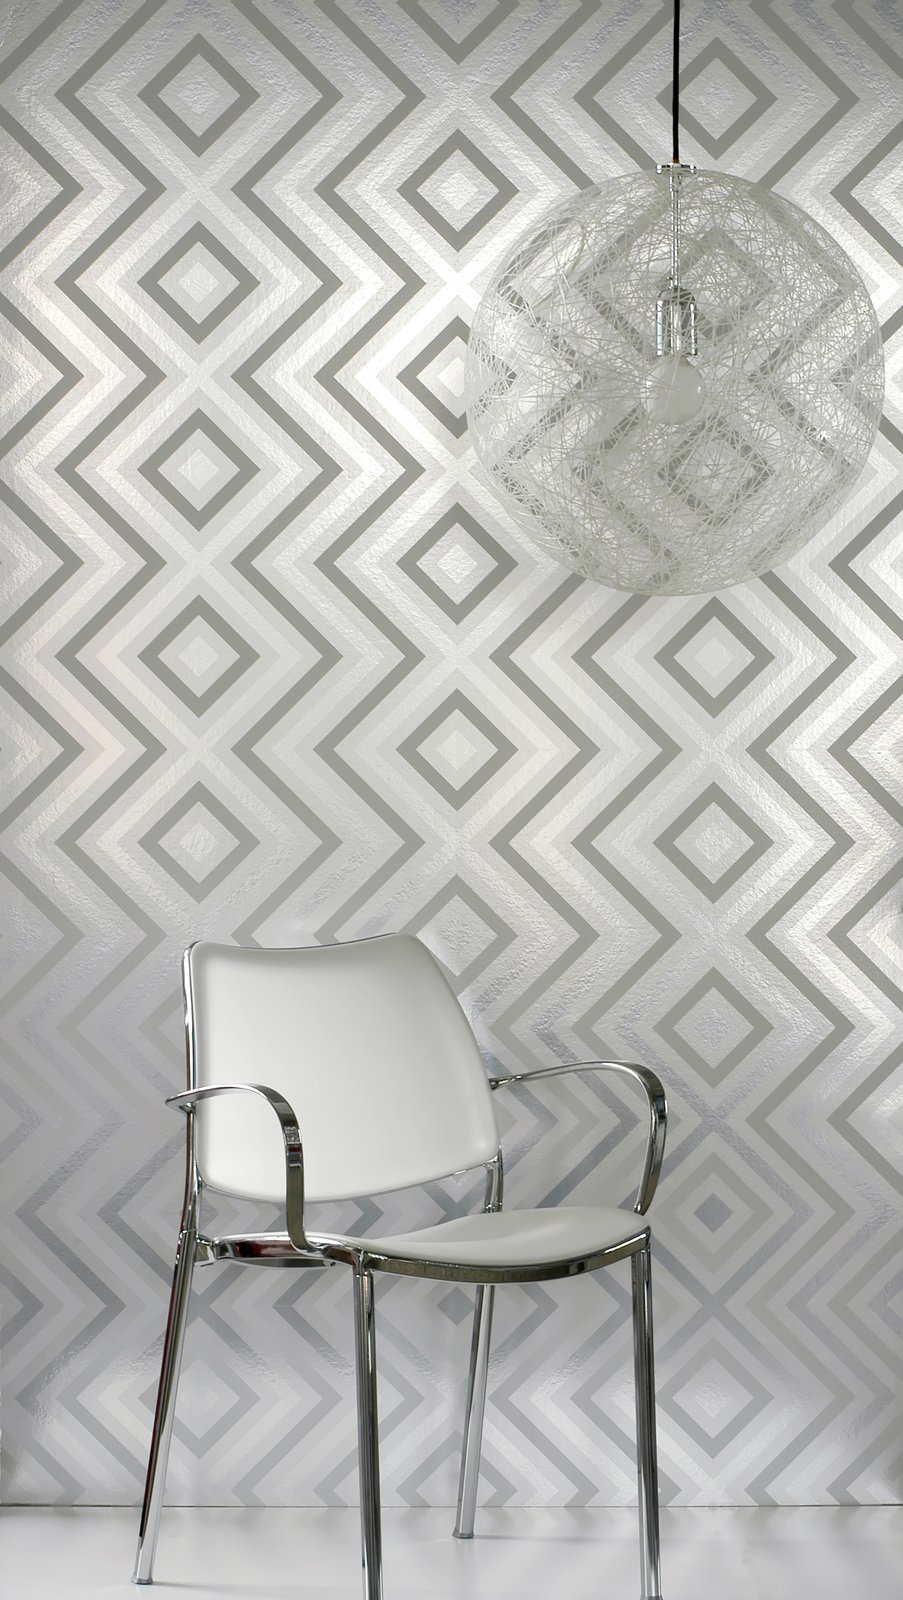 """Above all, determine what you want your wallpaper to do. """"Wallpaper can be used to accomplish a variety of goals. It can draw the eye to make a room feel larger, brighter or to focus on one specific area,"""" Sherman says.  Photo 11 of 11 in 10 Hip Wallpaper Designs from How to Shop for Wallpaper"""